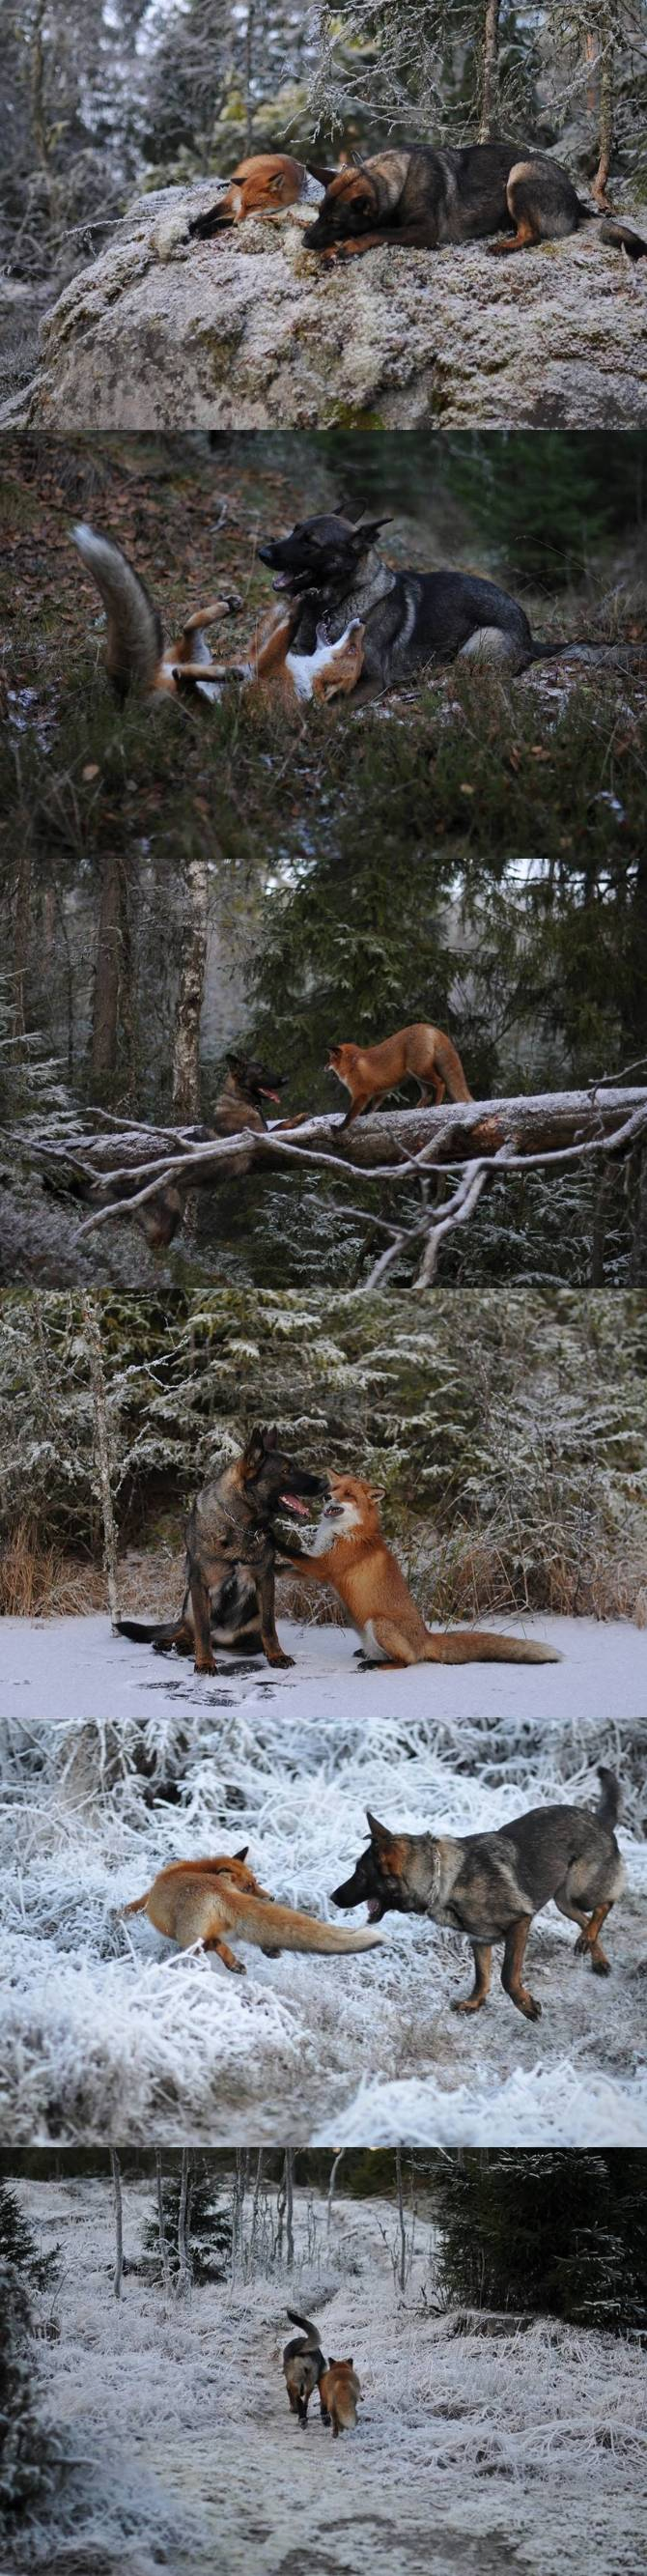 Fox and dog real friends.